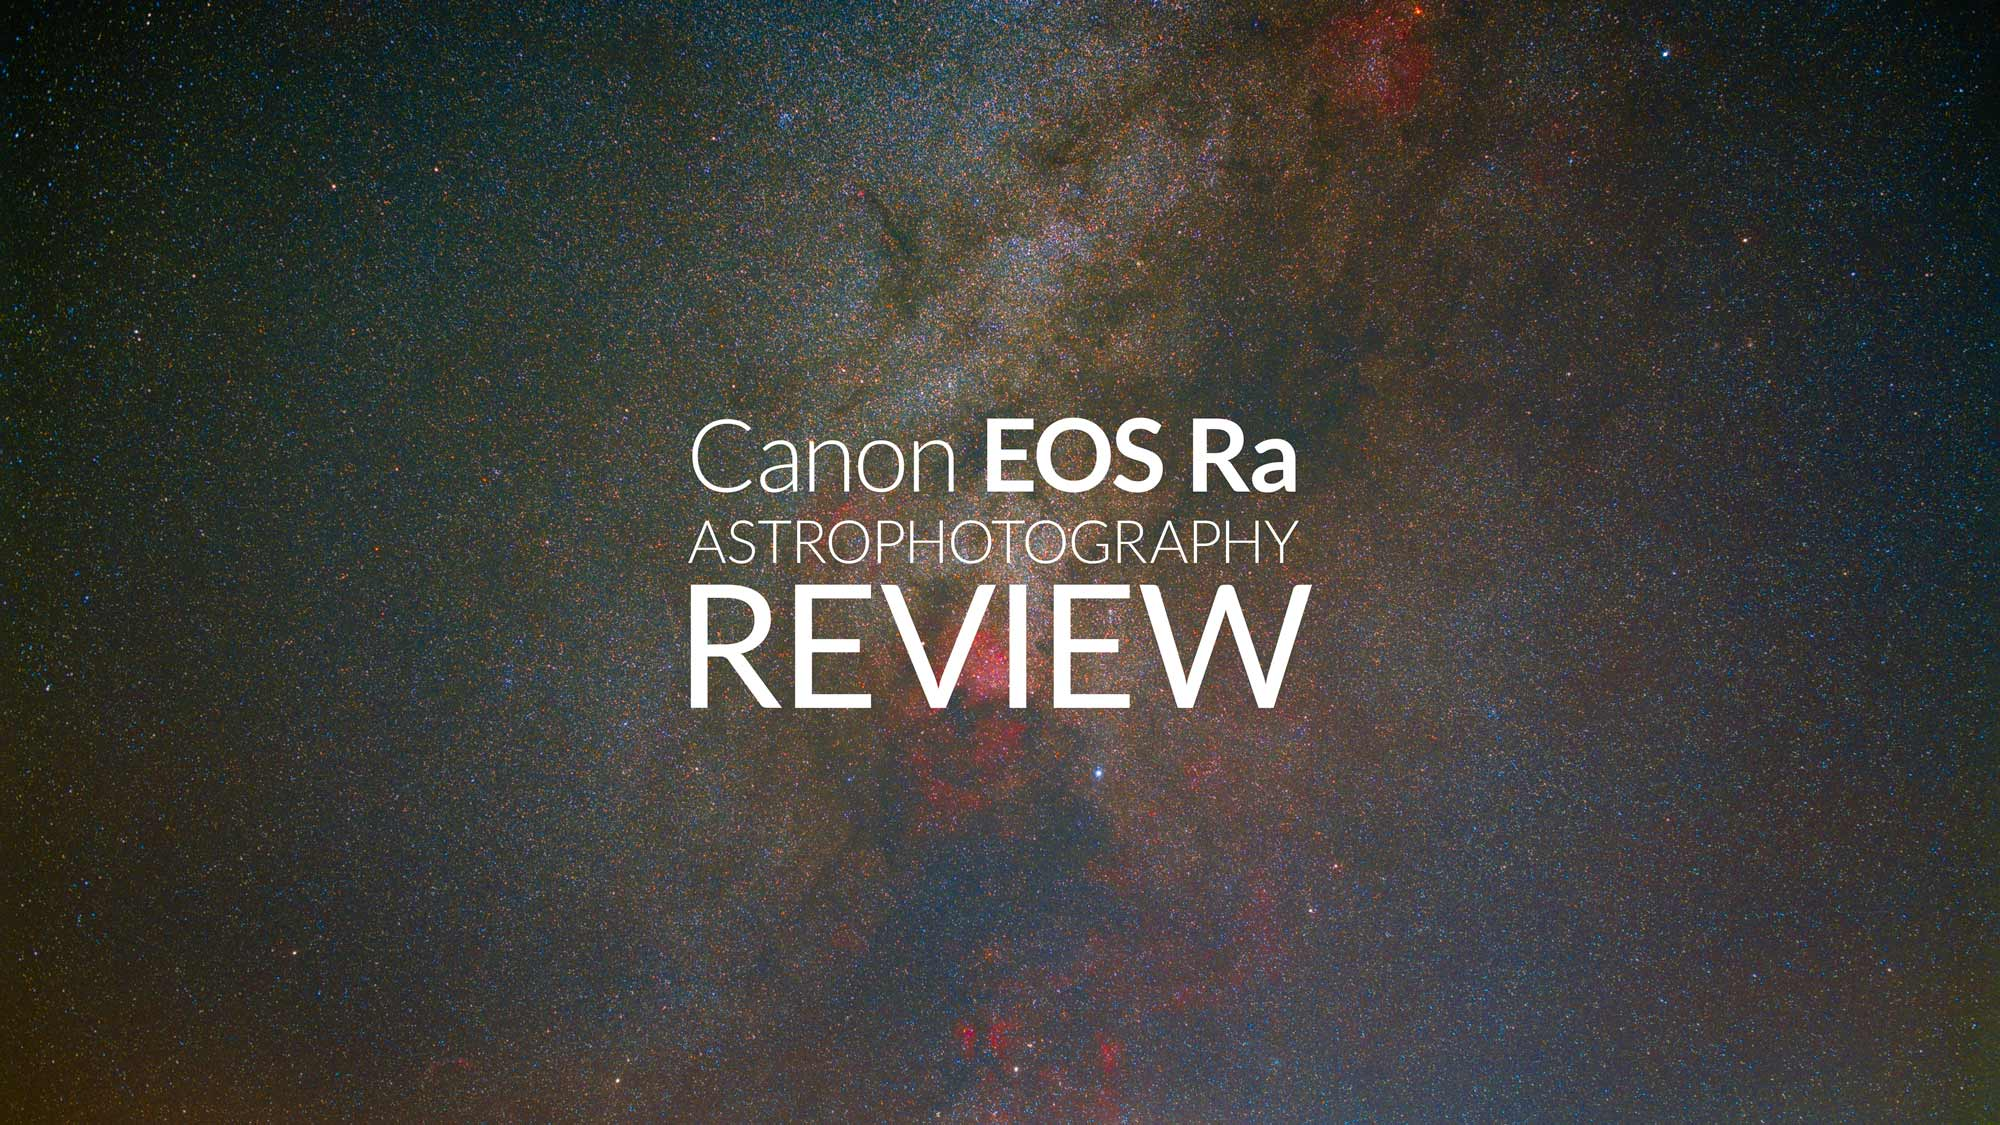 Canon EOS Ra Astrophotography Review